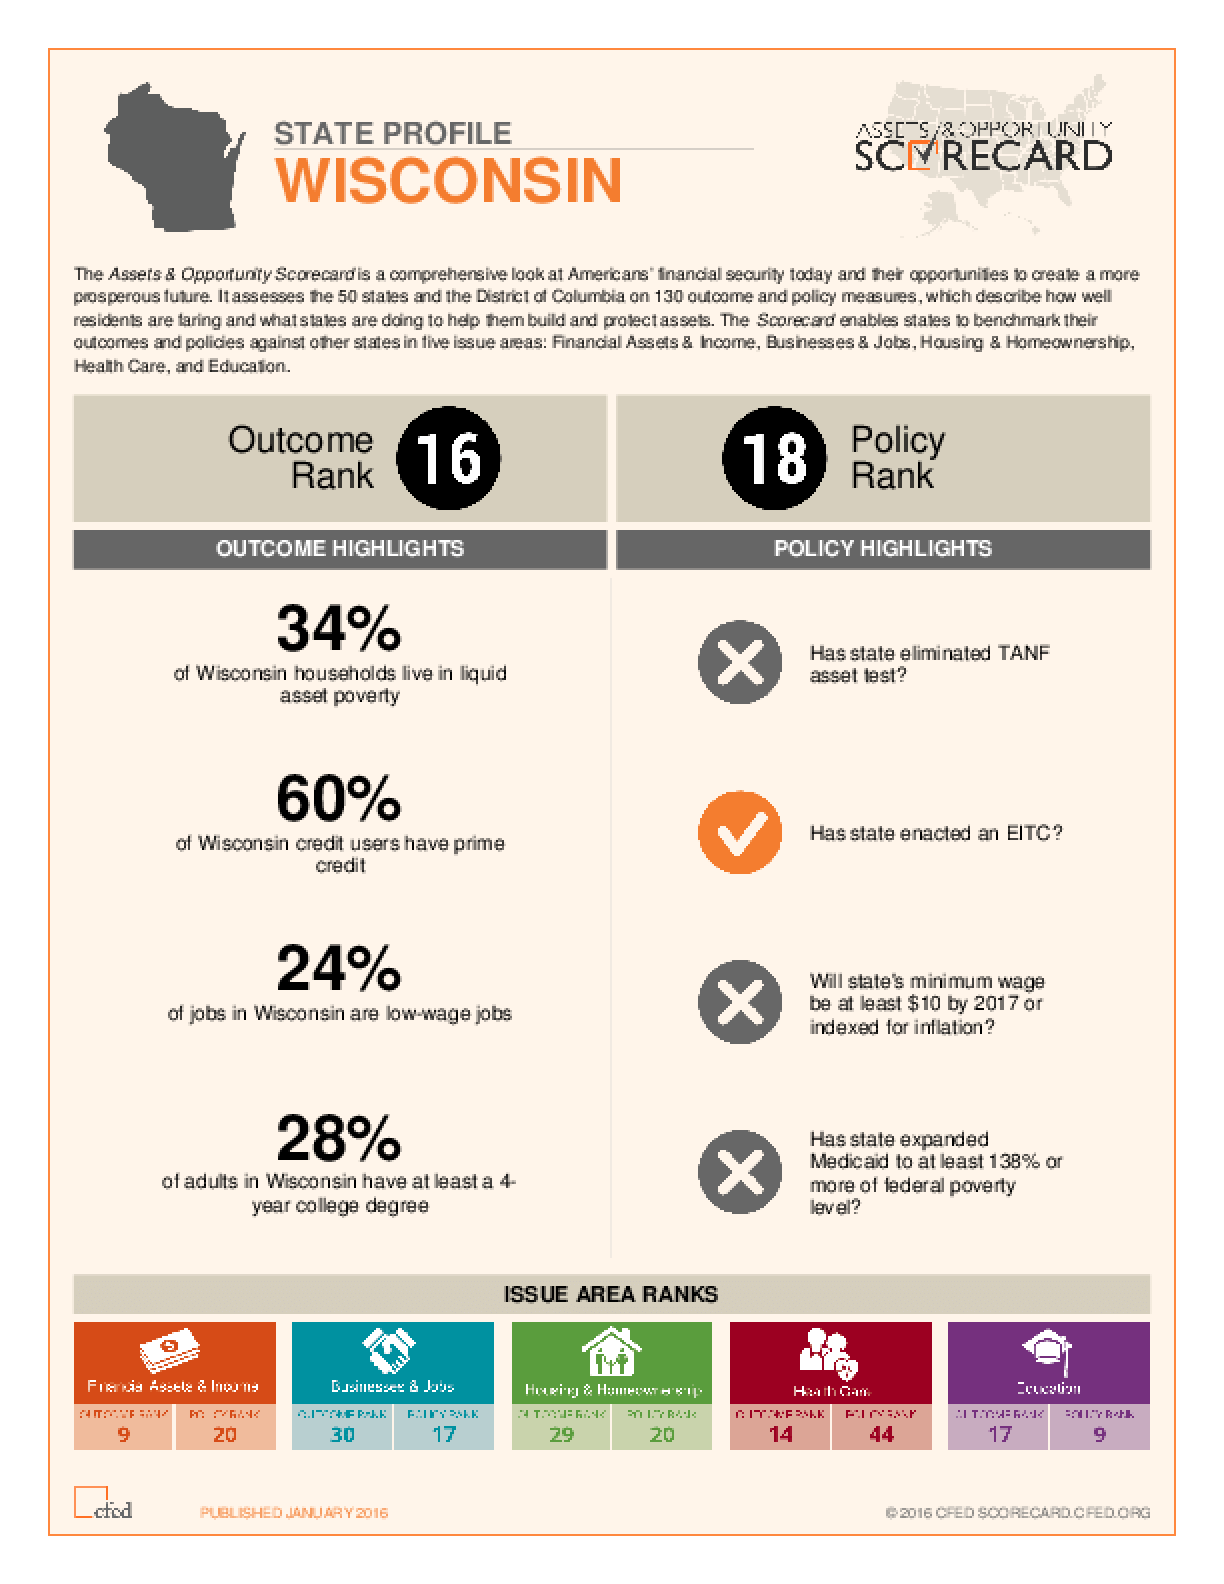 State Profile Wisconsin: Assets and Opportunity Scorecard